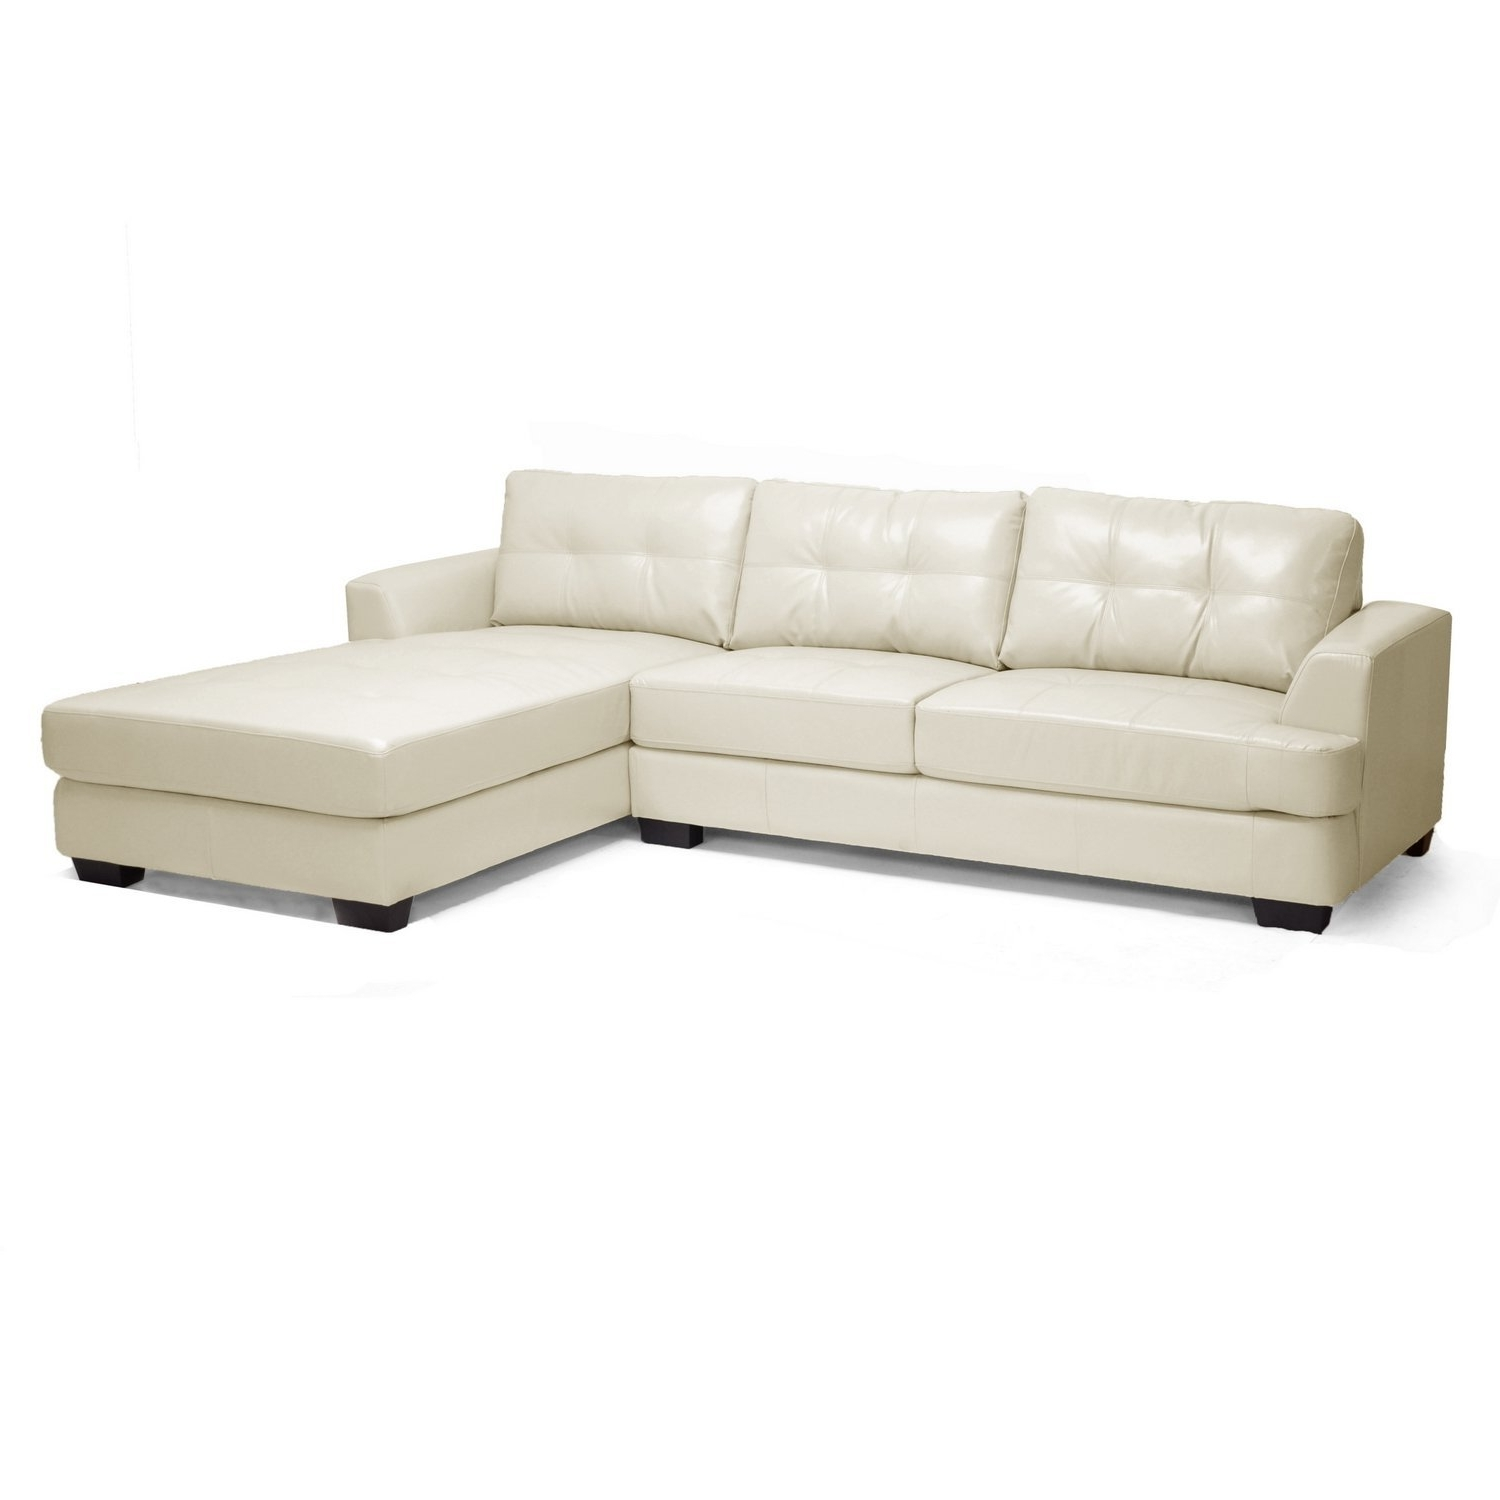 Most Recently Released Cream Chaise Sofas With Regard To Amazon: Baxton Studio Dobson Leather Modern Sectional Sofa (View 6 of 15)